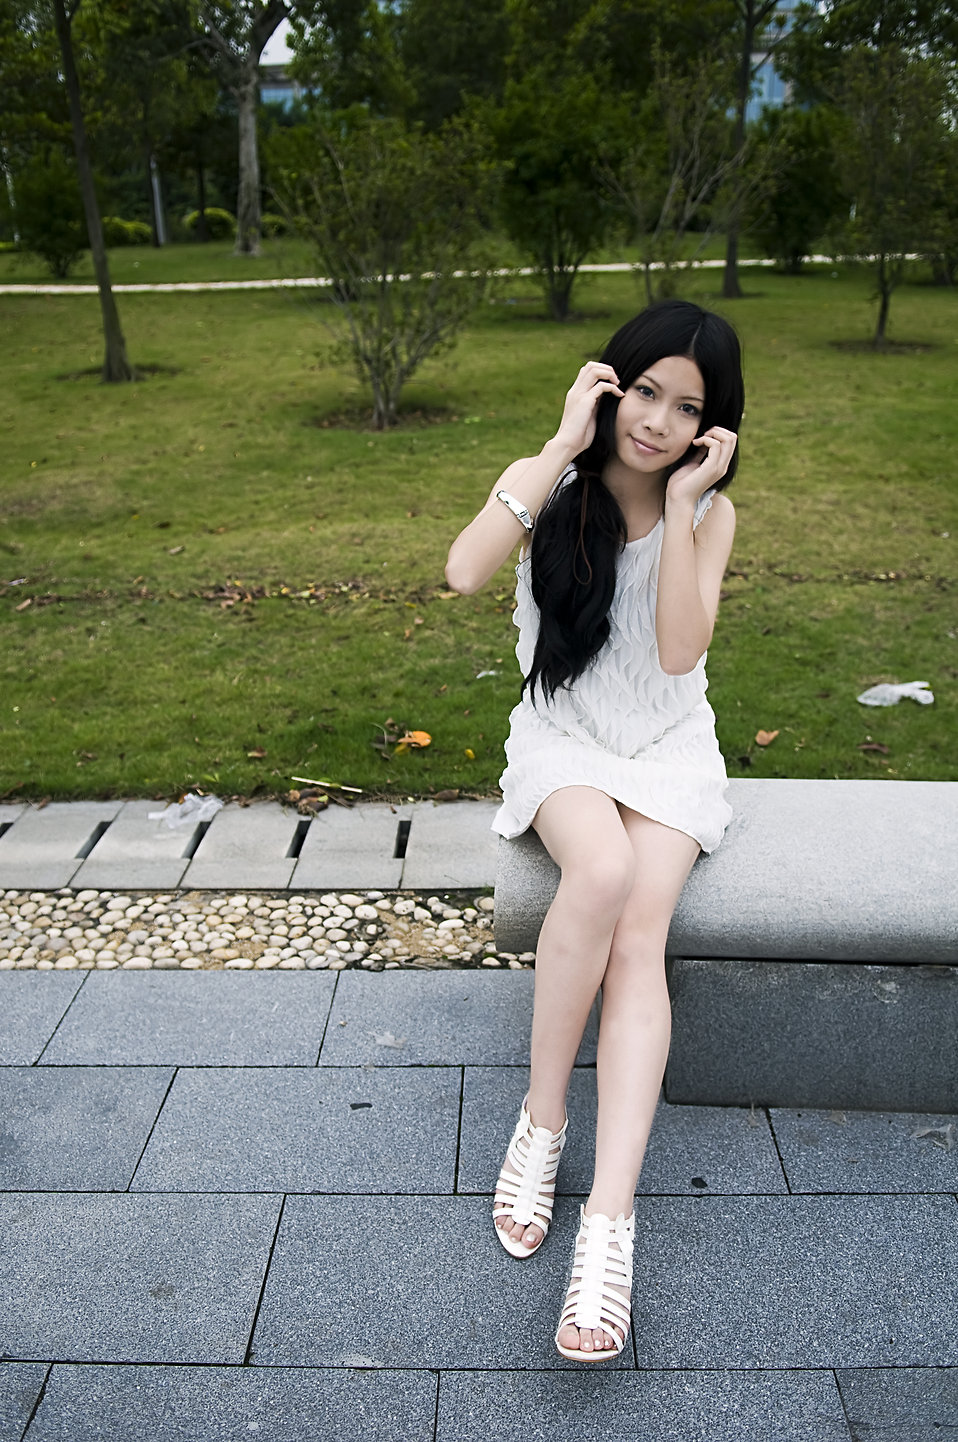 A beautiful Chinese girl posing on a bench outdoors : Free Stock Photo